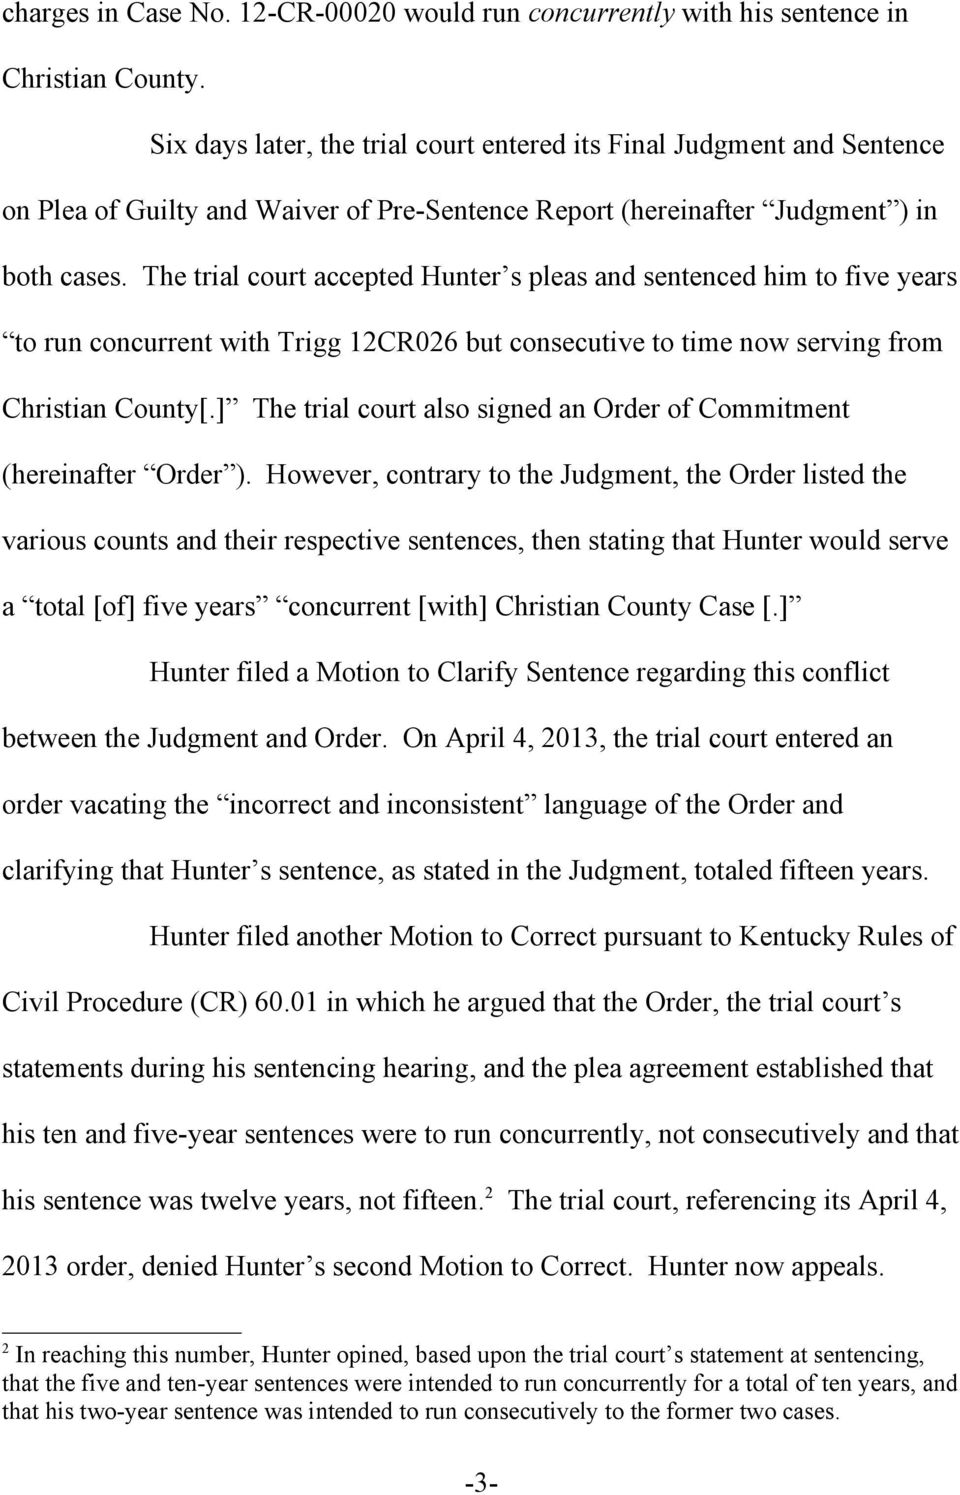 The trial court accepted Hunter s pleas and sentenced him to five years to run concurrent with Trigg 12CR026 but consecutive to time now serving from Christian County[.